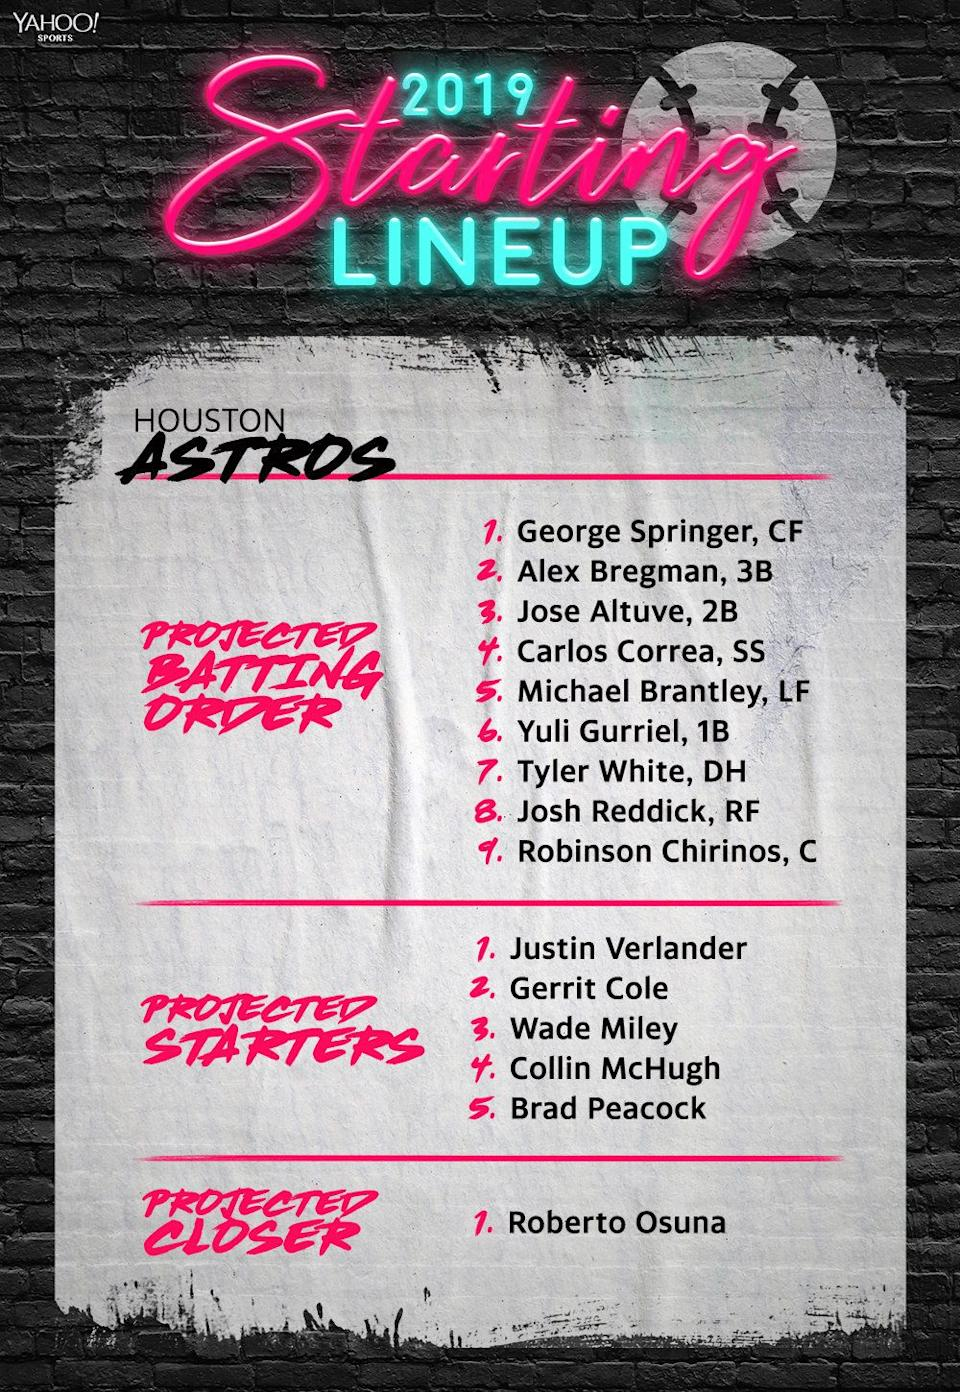 The Houston Astros 2019 projected lineup. (Yahoo Sports)